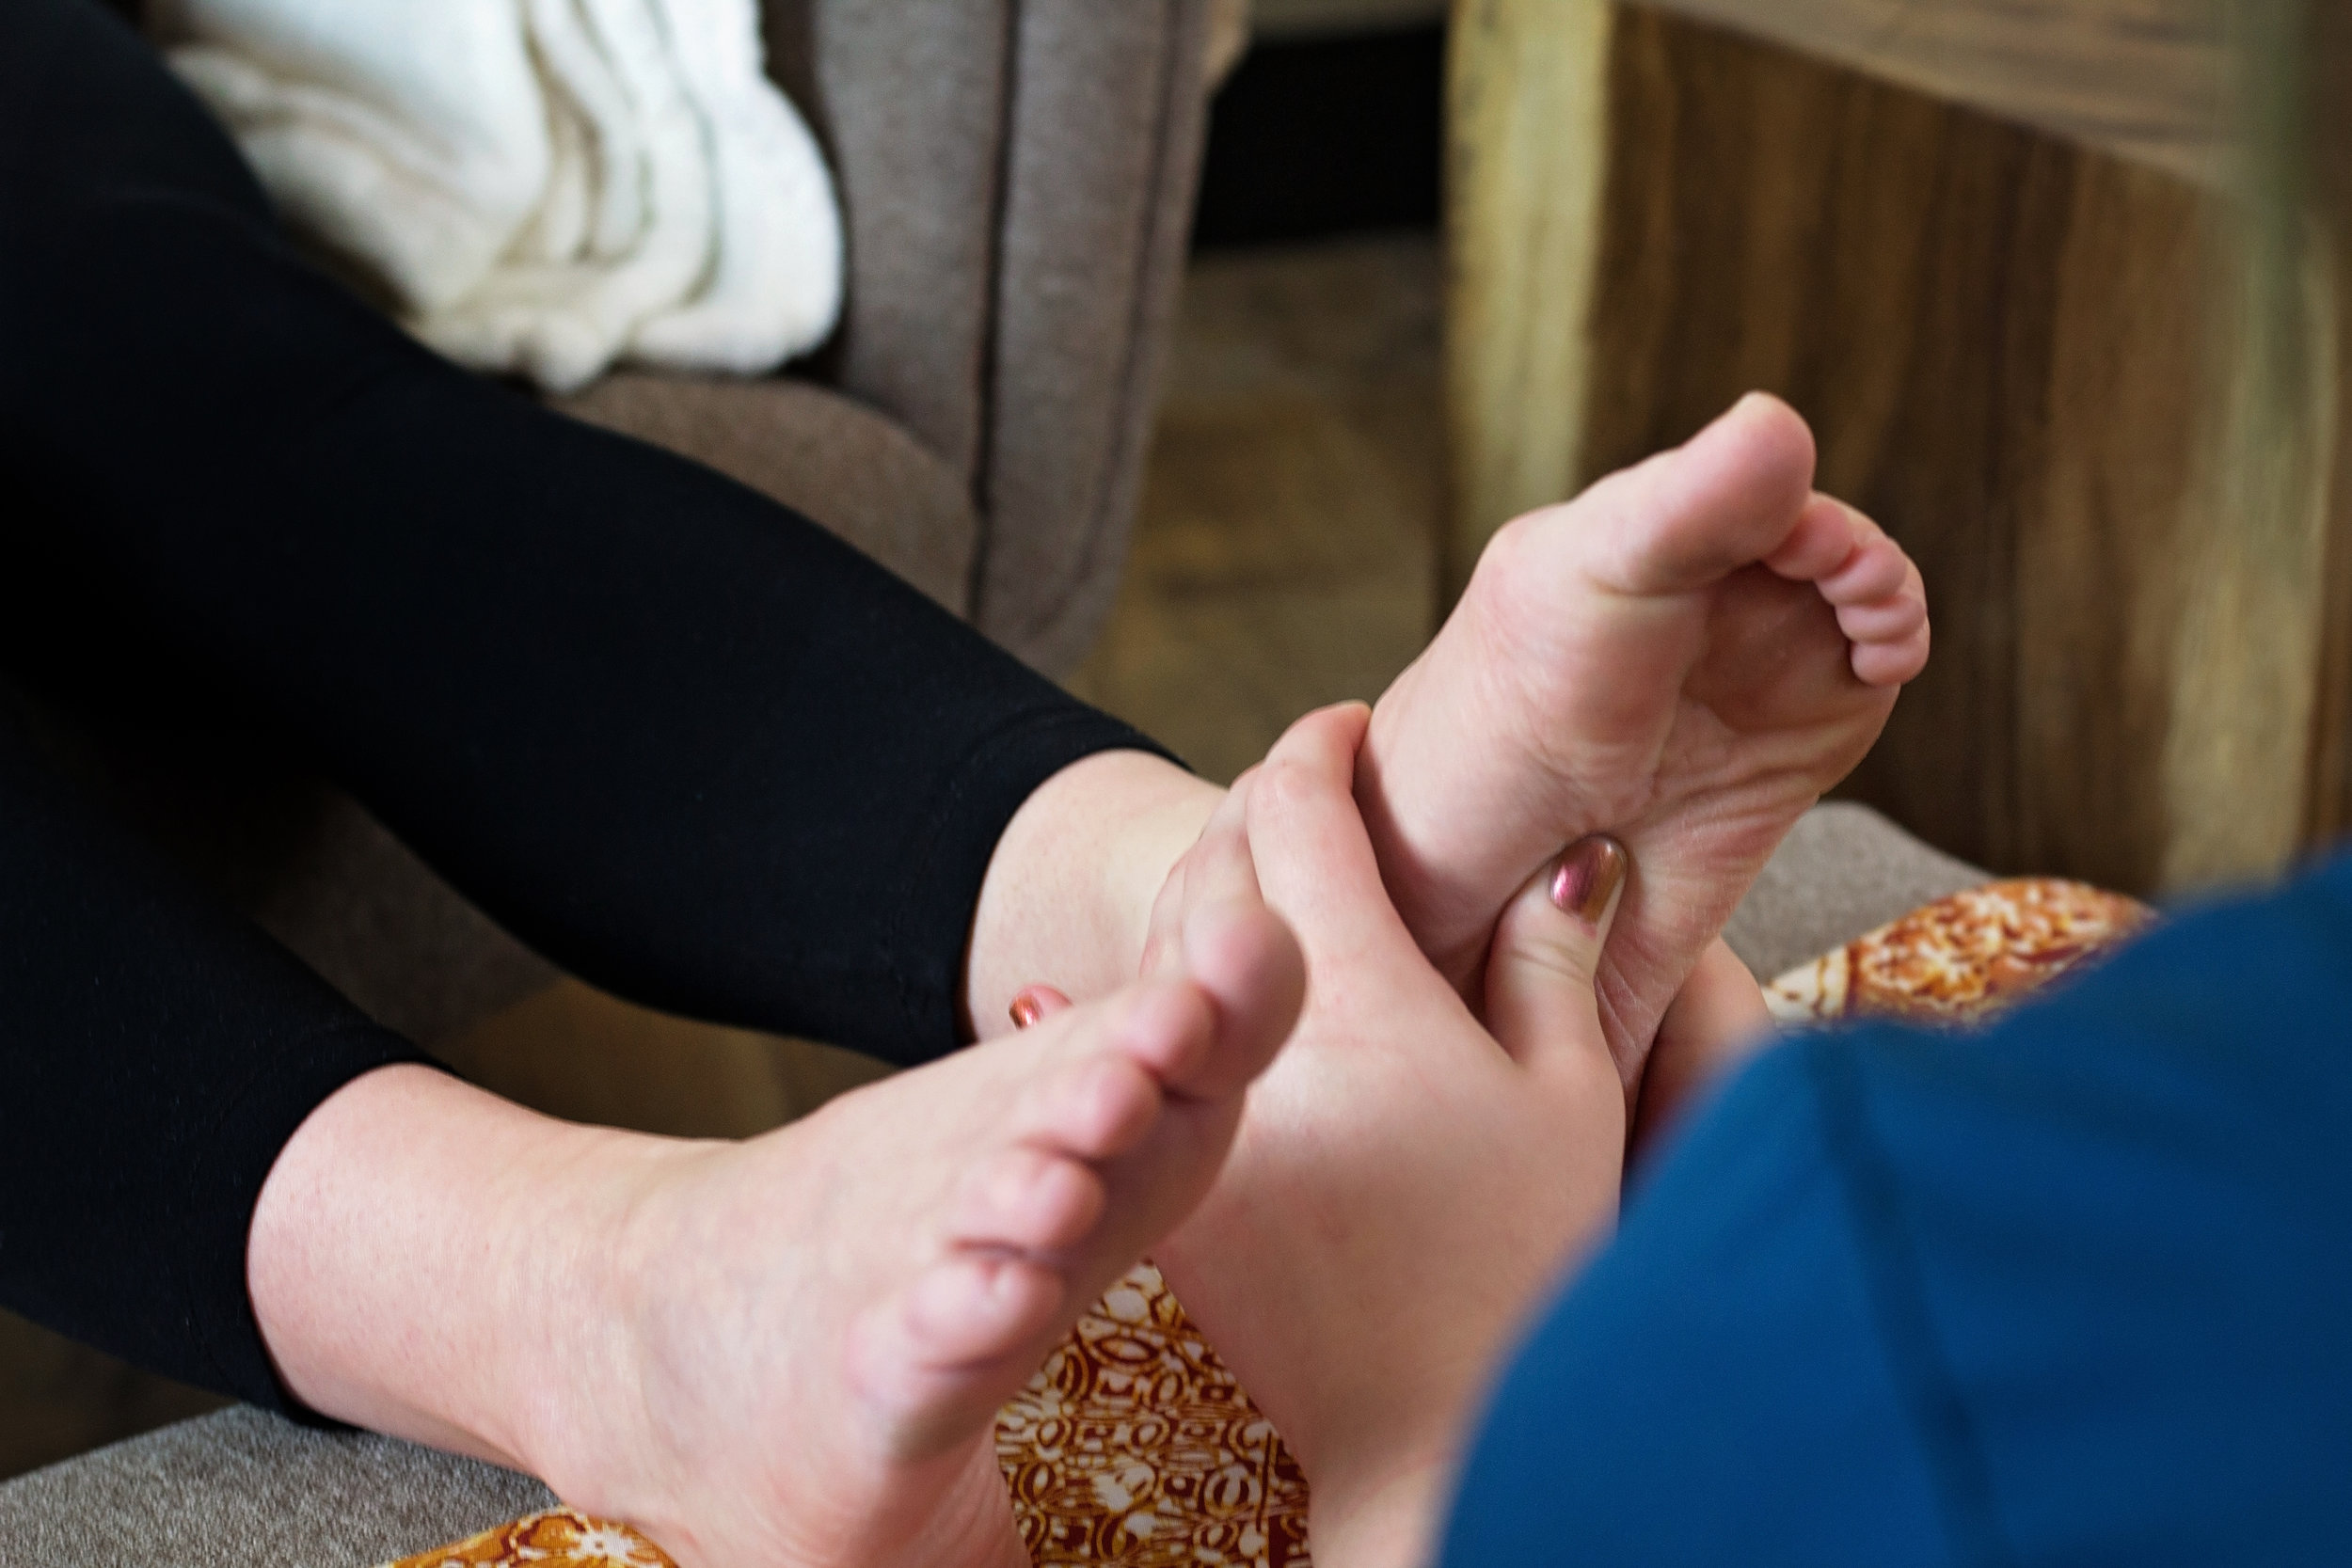 CBD Reflexology Add-On - Add on to any reflexology service for $9.95CBD is a powerful anti-inflammatory, regulates homeostasis, and soothes chronic pain. Add this to your reflexology service to relieve deep aches and pain.*100% THC-free and provides approximately 150 mg of CBD per ounce of oil. The average reflexology service uses about 1 ounce of oil per guest.Note: When booking your reflexology service, please leave us a note in the Special Requests section naming the Add-On you would like.